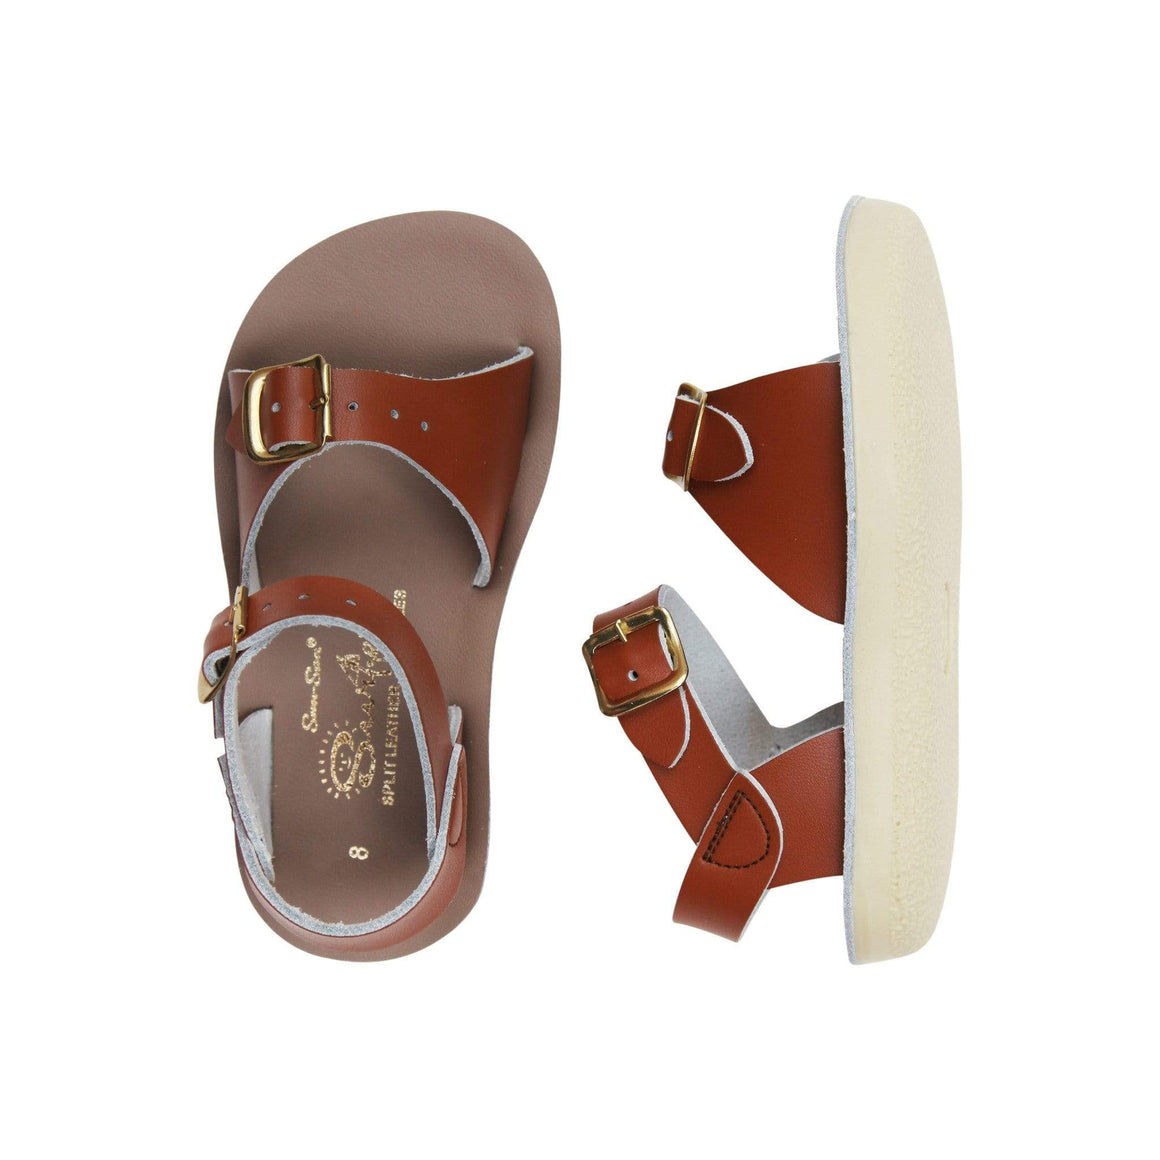 Surfer Salt Water Sandals - Tan Sandals Salt Water Sandals